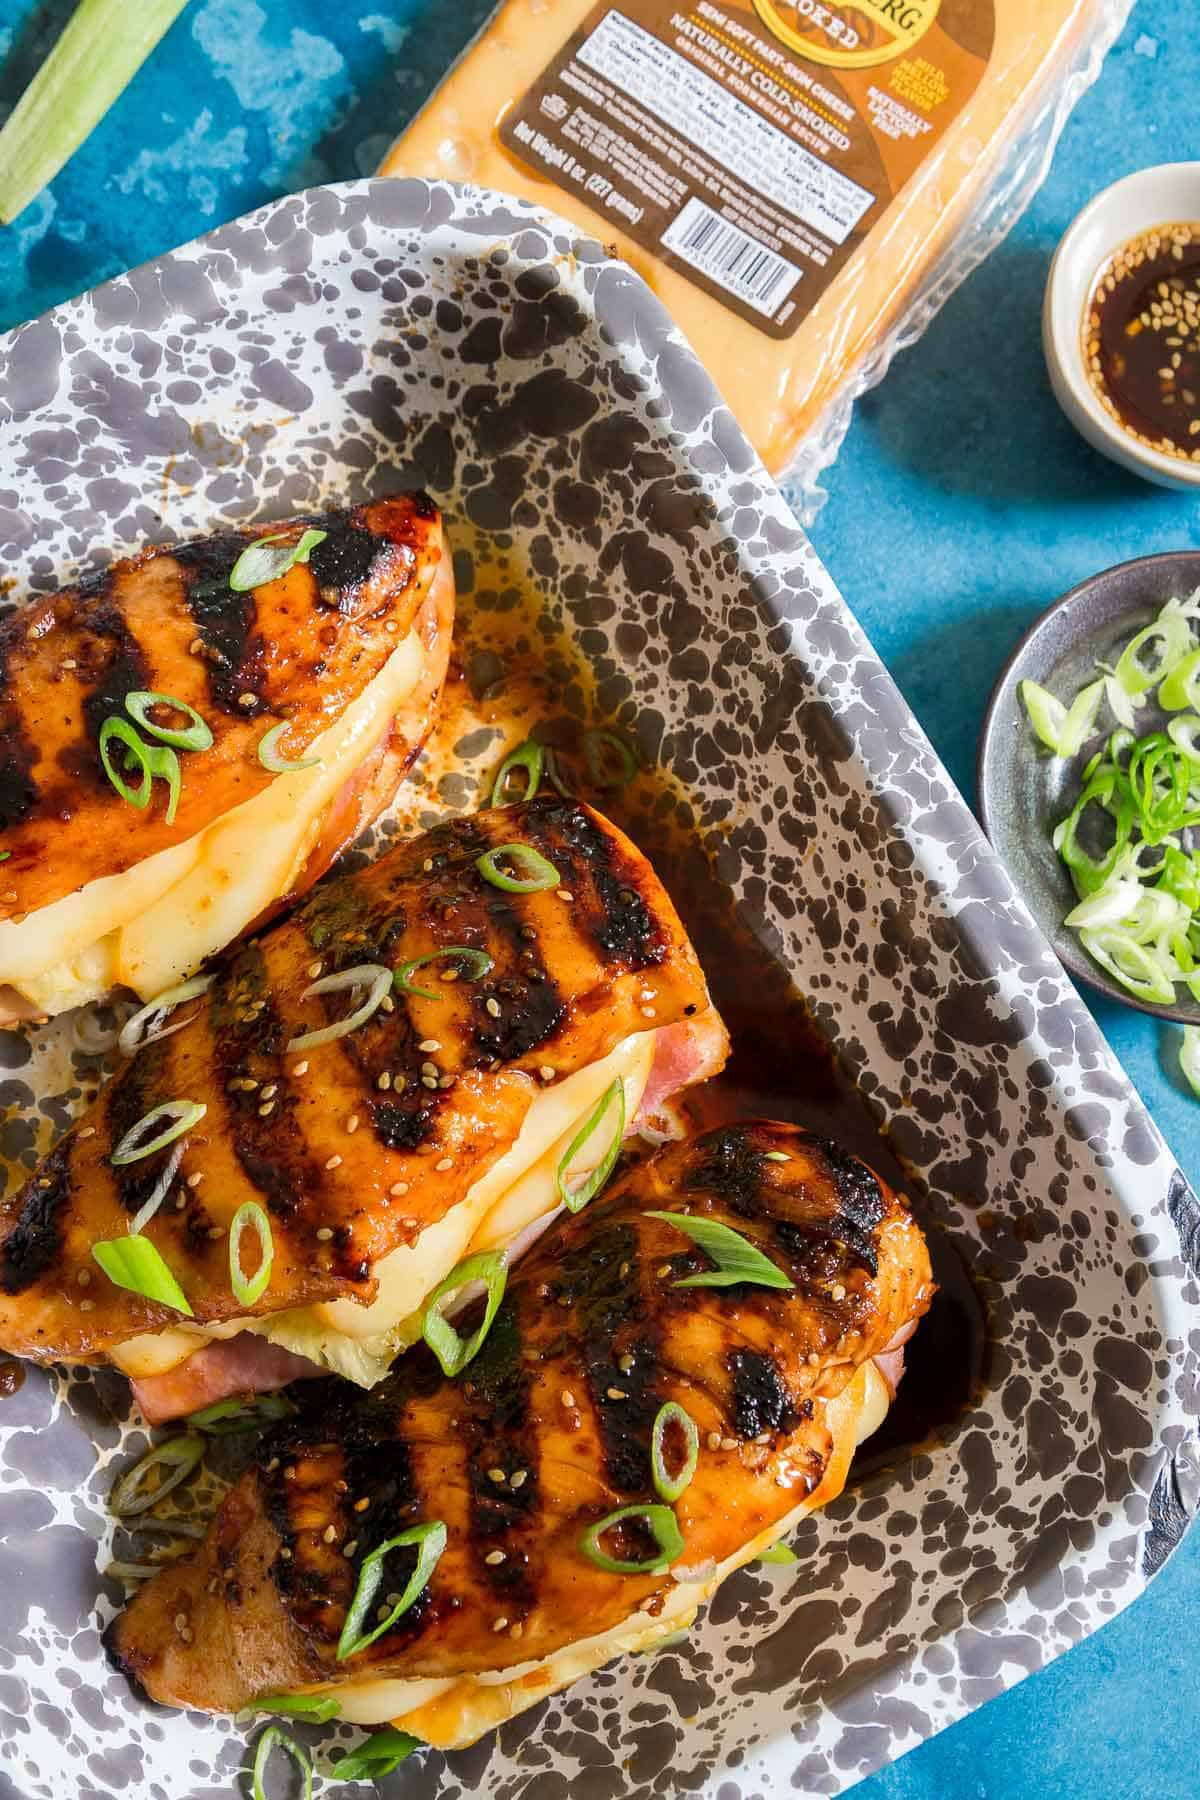 This grilled Hawaiian chicken is stuffed with ham, fresh pineapple and melted smoked Jarlsberg cheese with a sticky sweet teriyaki glaze.